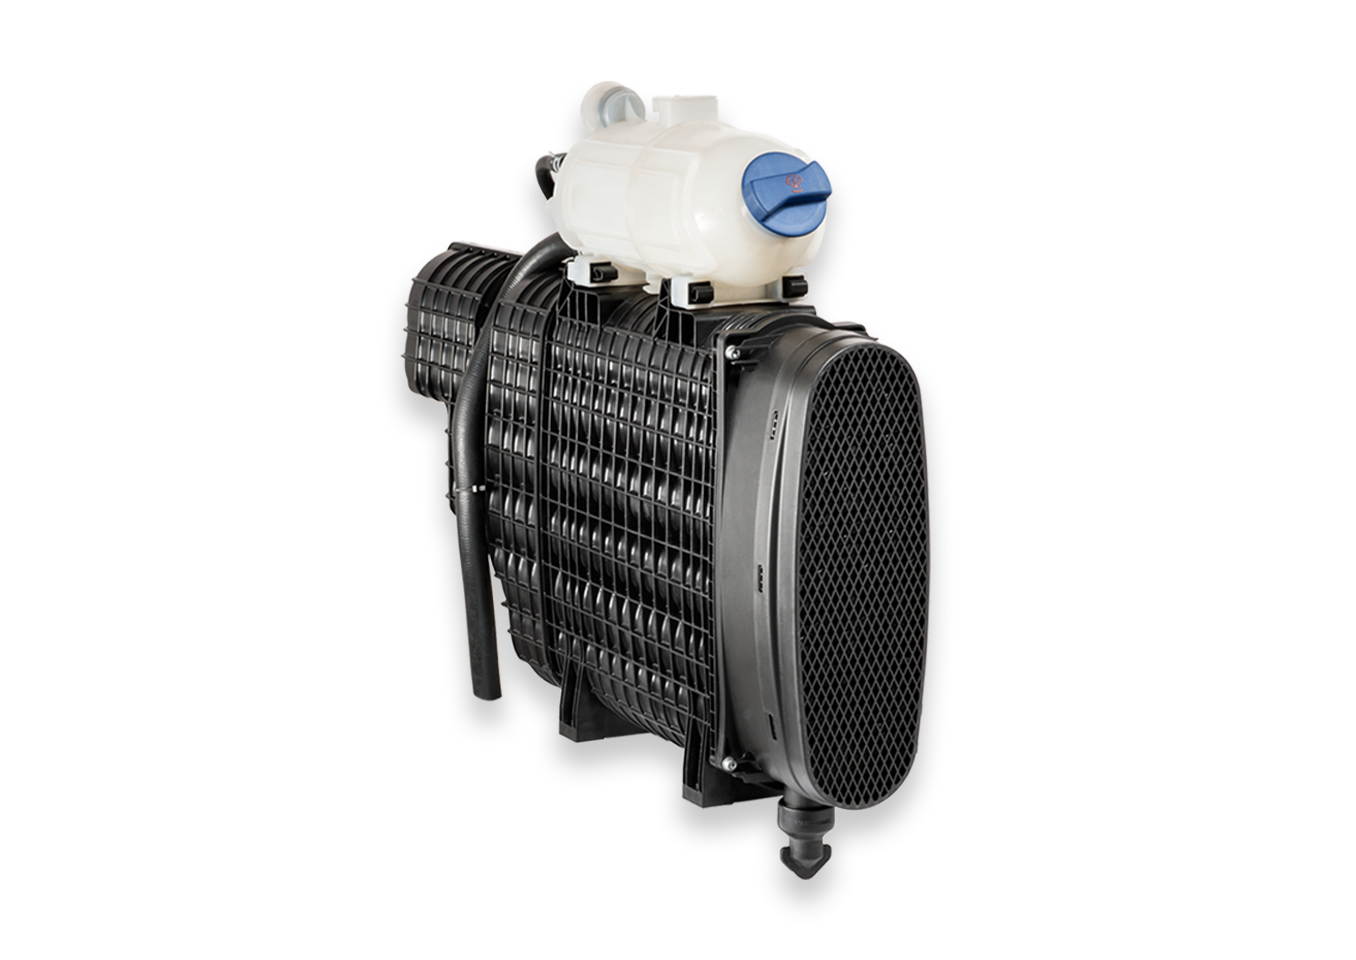 MANN+HUMMEL Exalife air cleaner system with coolant reservoir on top